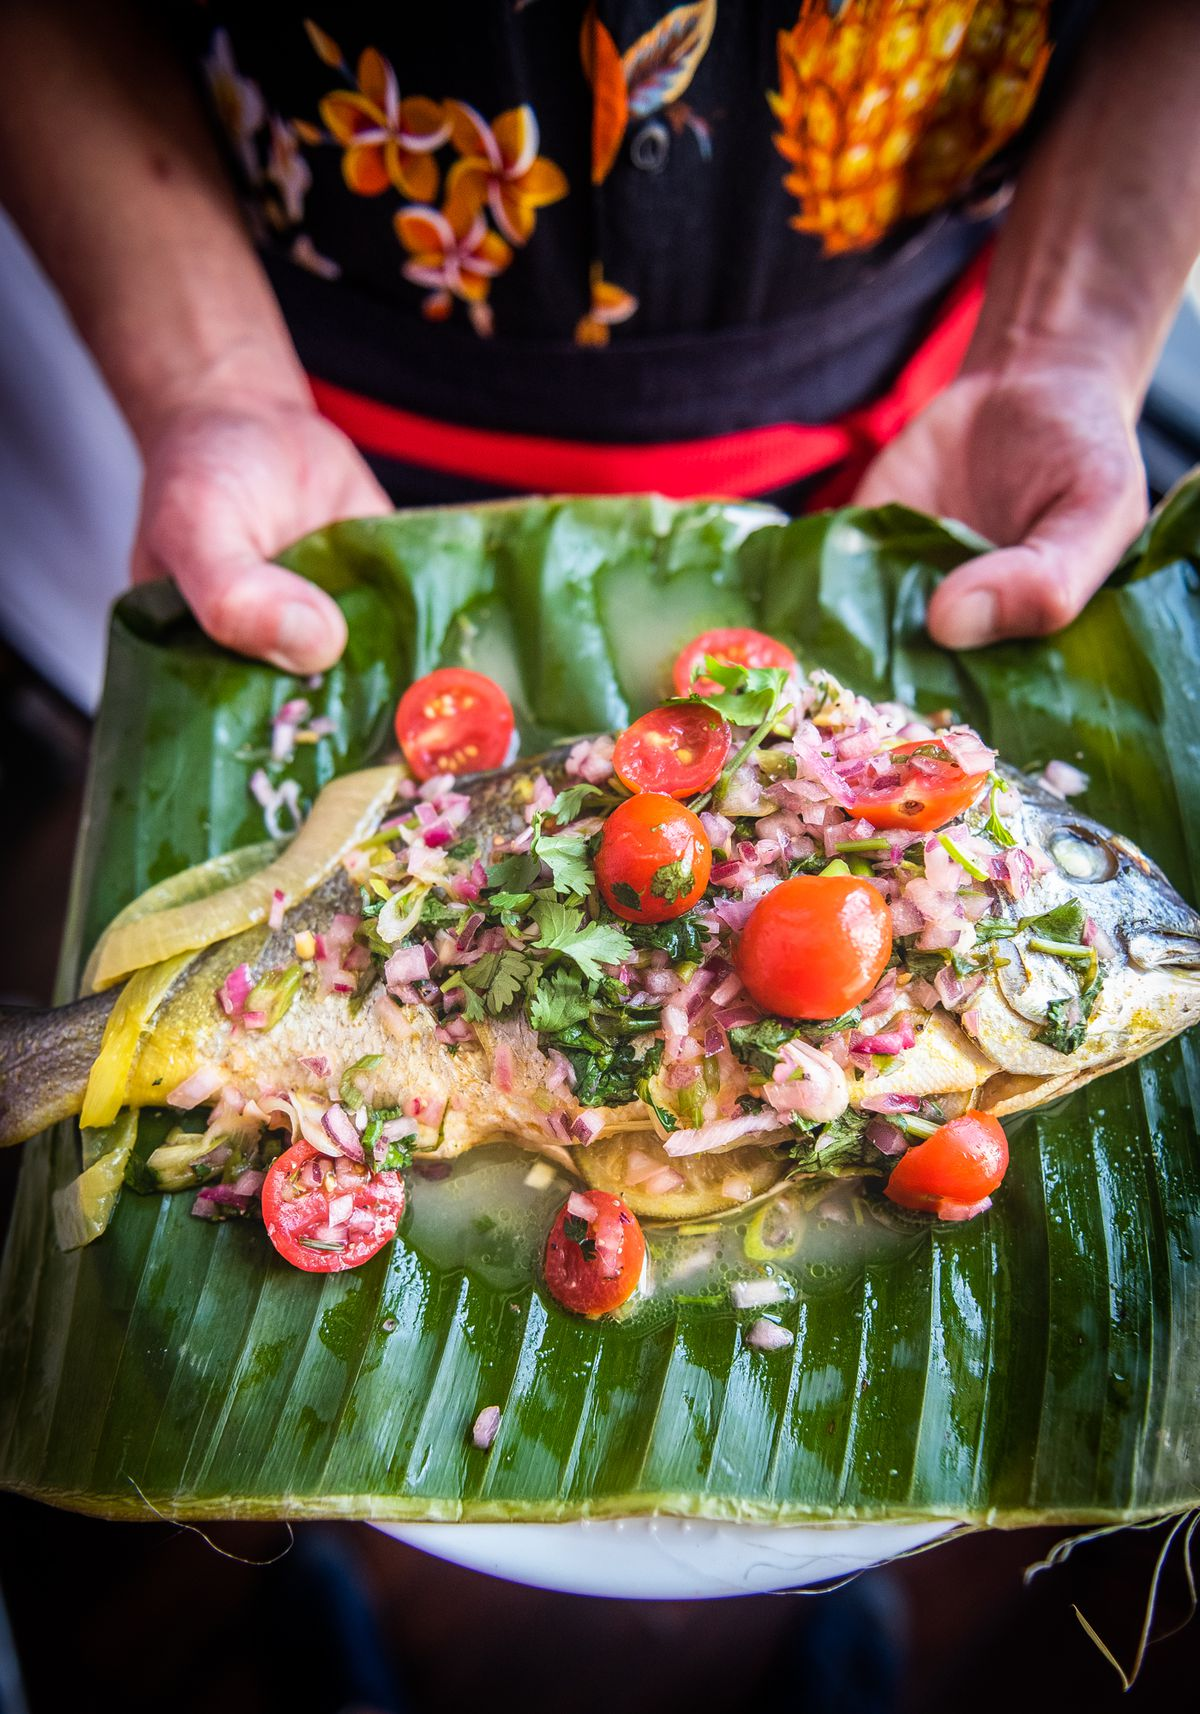 Steamed whole fish with turmeric and citrus.